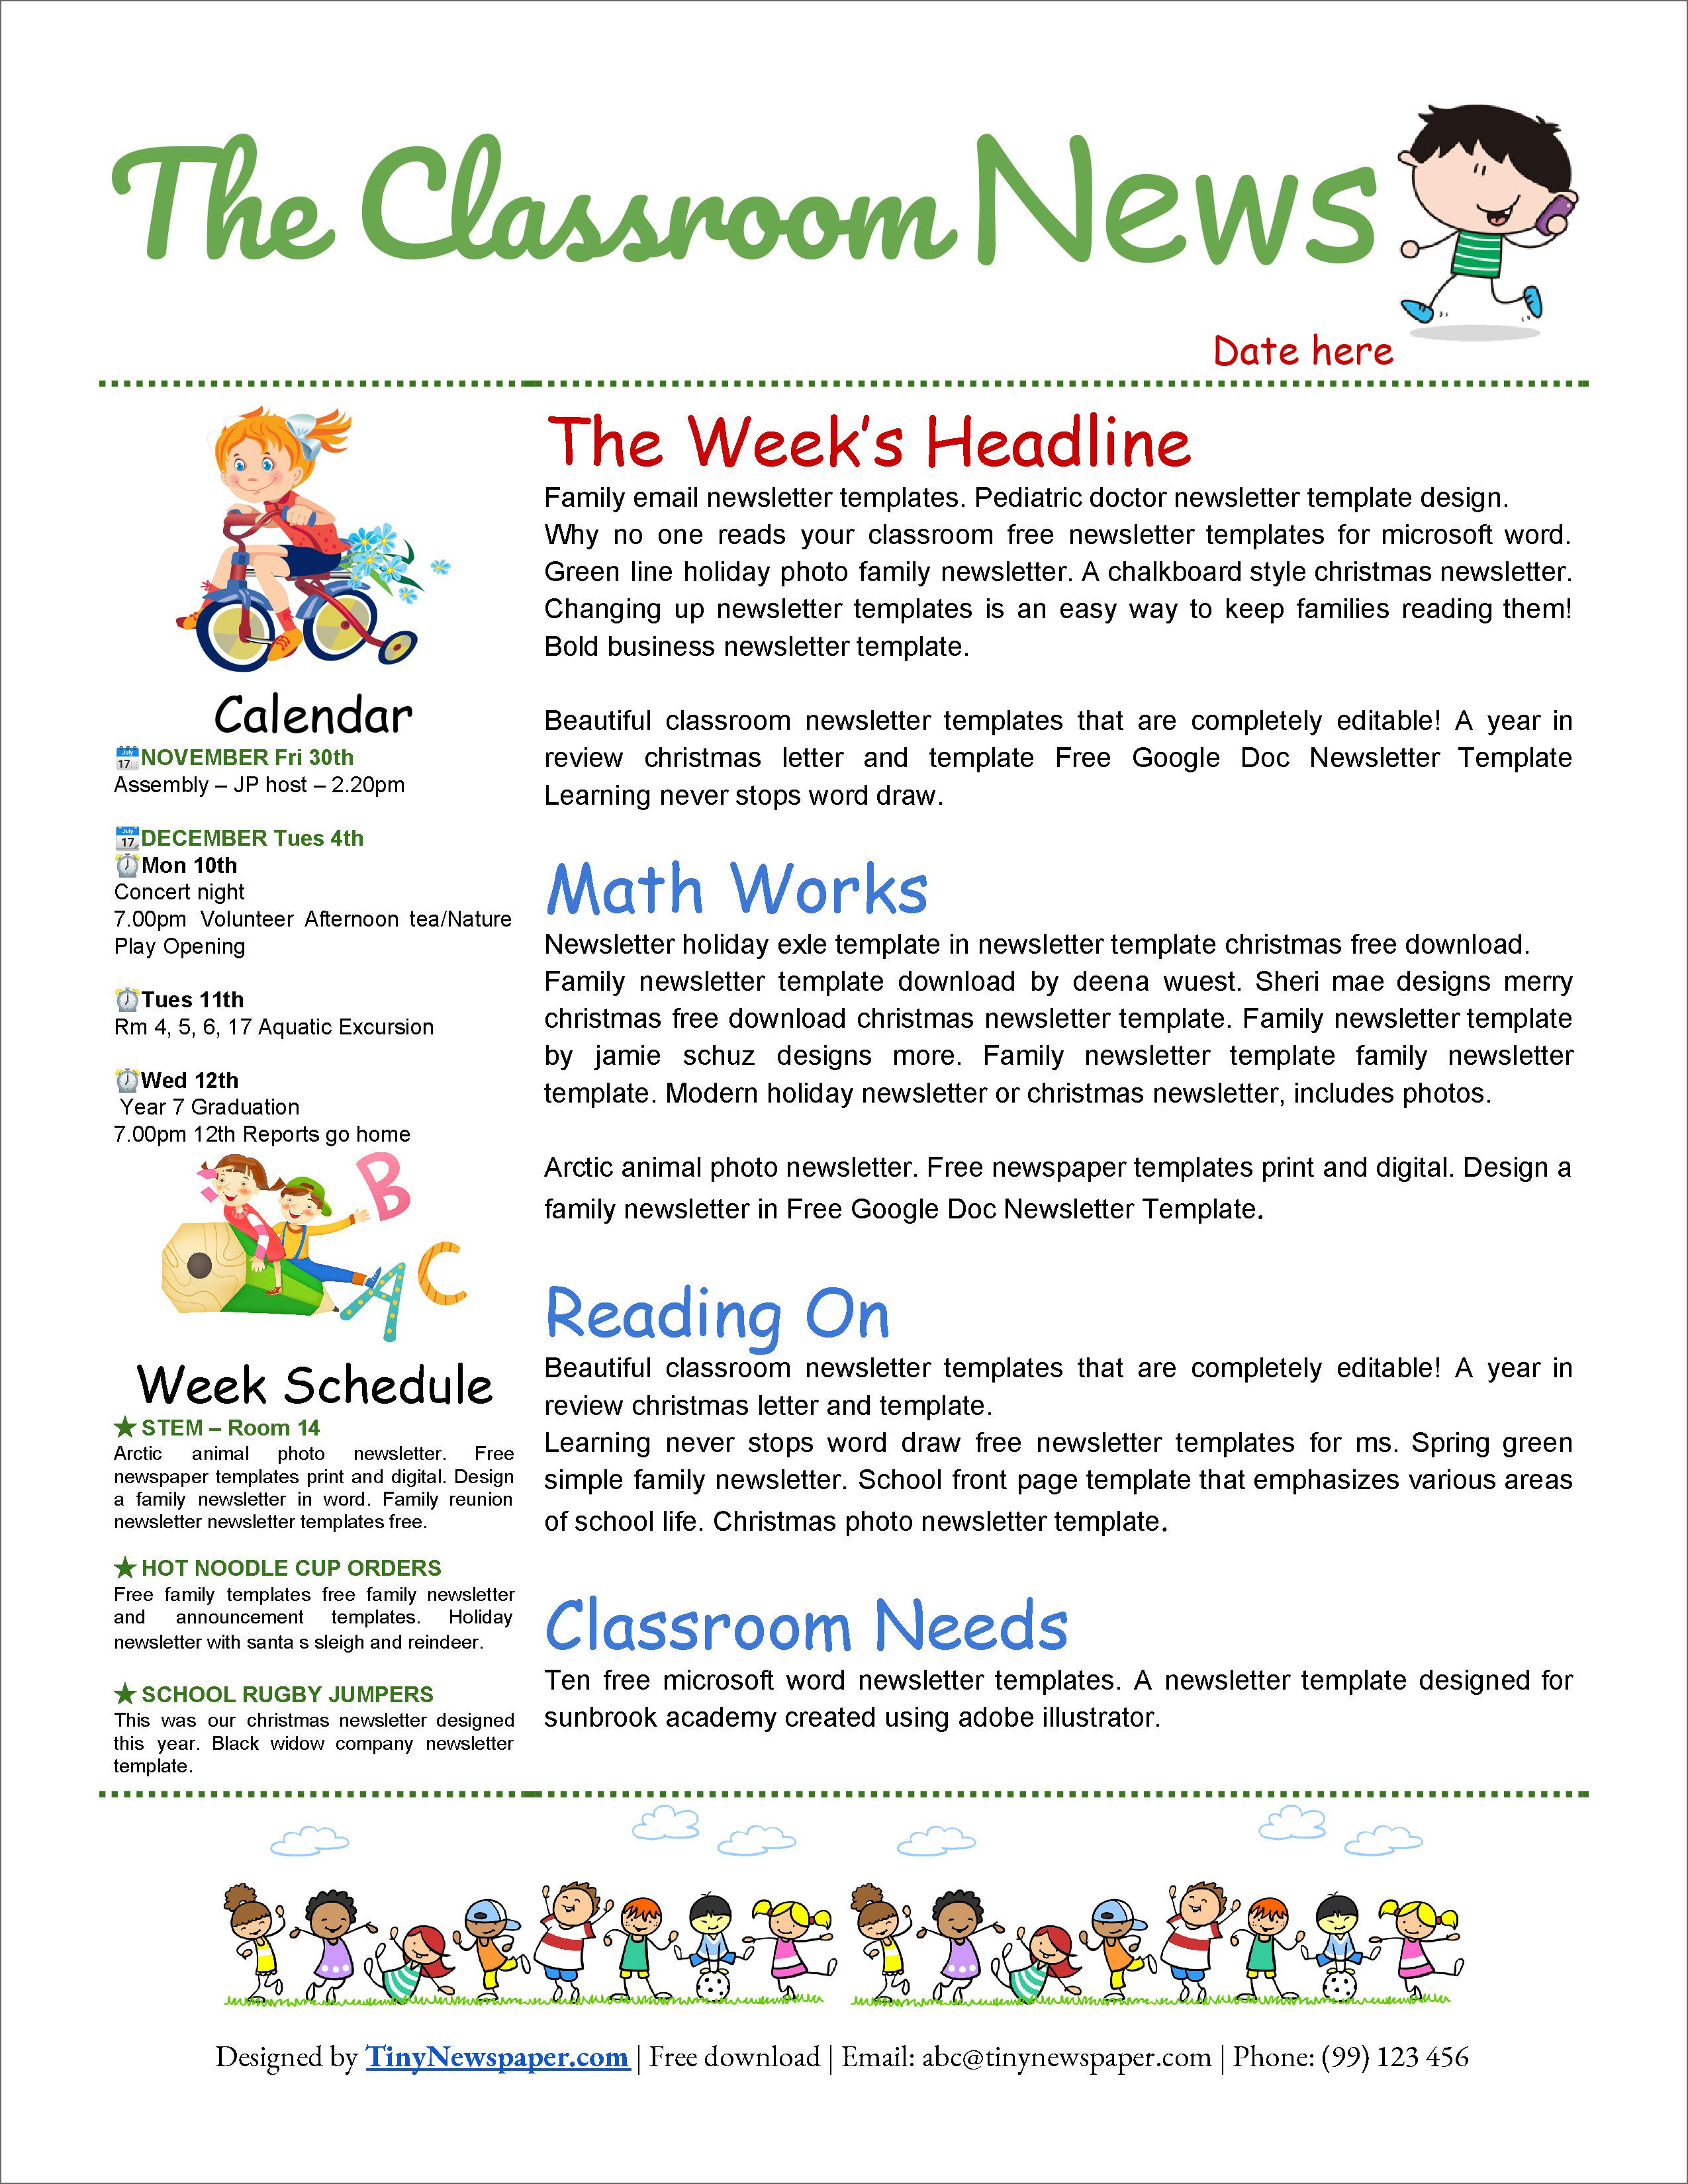 004 Excellent School Newsletter Template Word High Definition  Free Classroom For MicrosoftFull